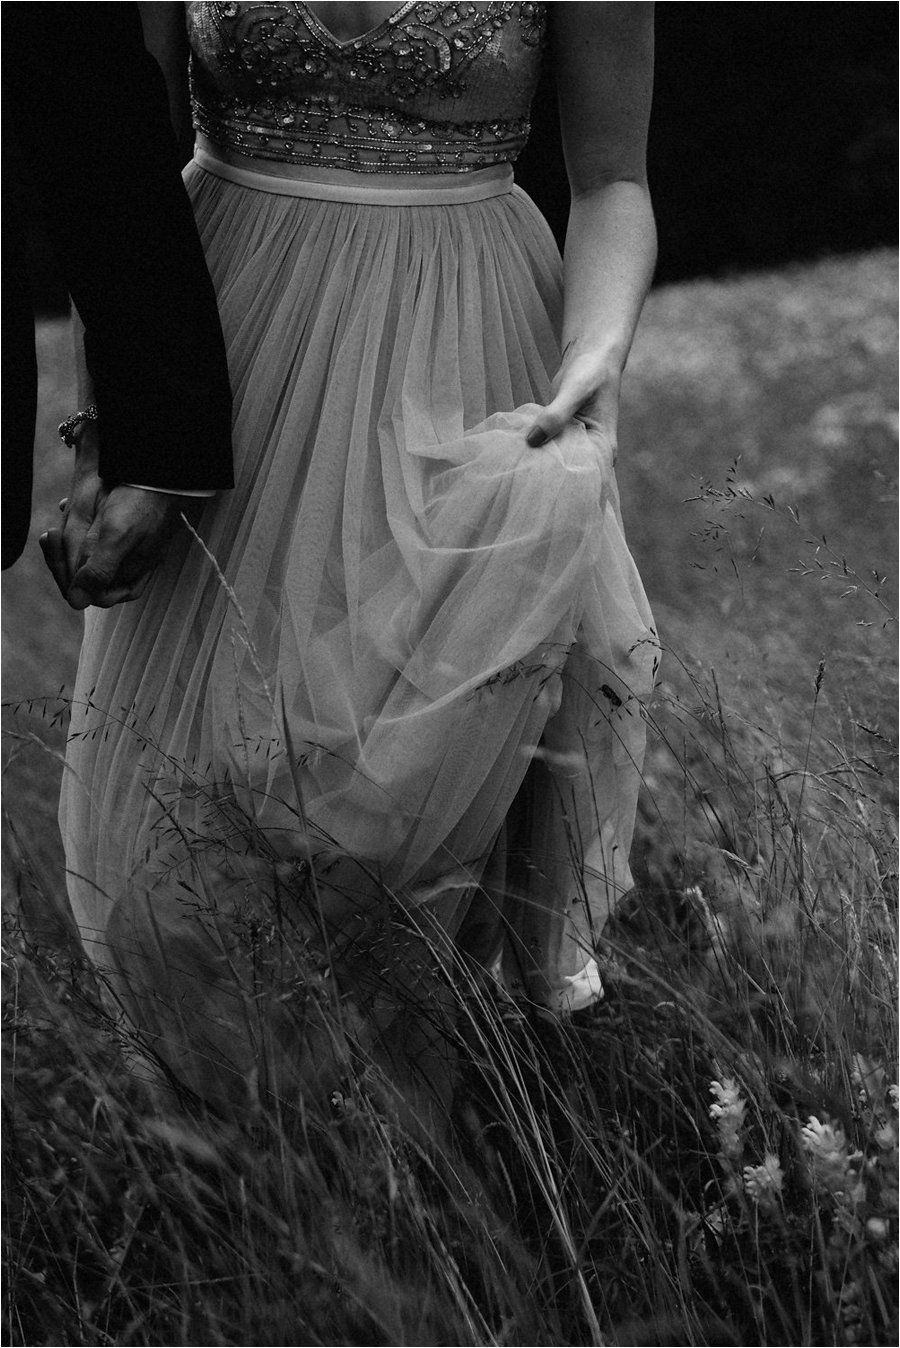 The bride holds up the front of her BHLDN dress as she walks through the long grass - After wedding honeymoon shoot in Wengen by Caroline Hancox Photography